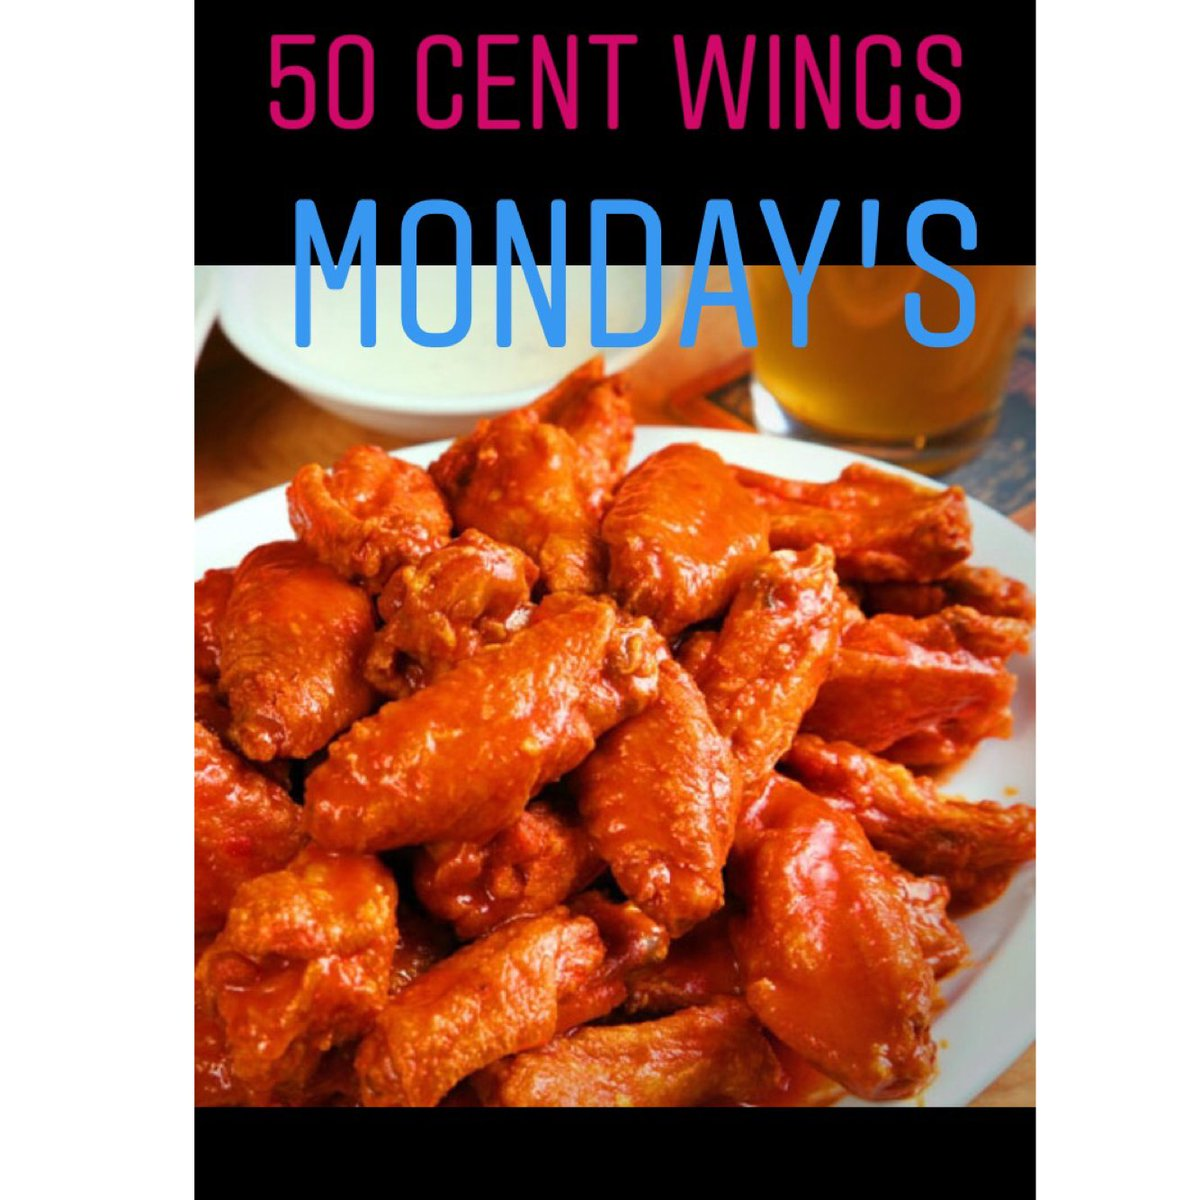 50 Cent Wings Every Mondays! ALL DAY * * * #itsinqueens #queensny #nyc #wings #neirs  #historicbar #chickenwings